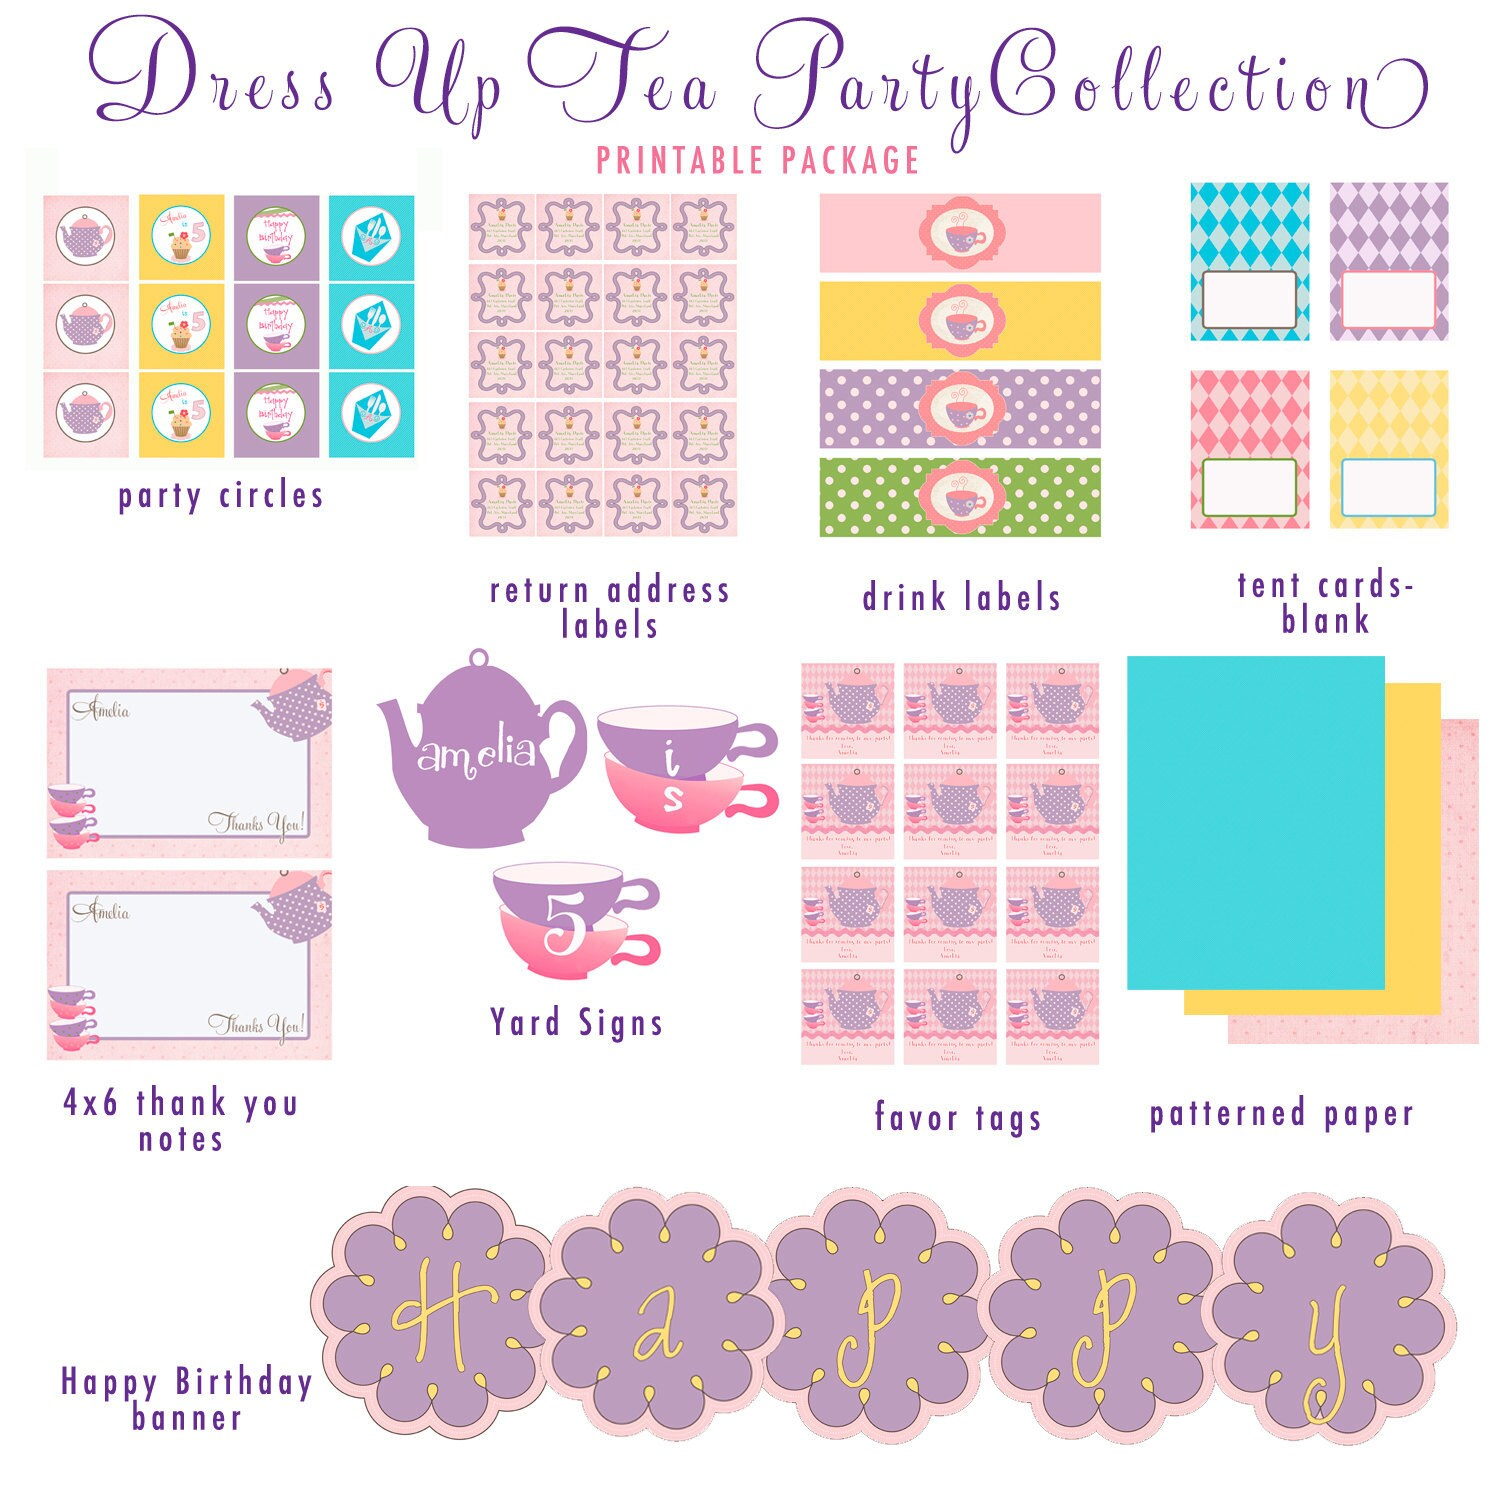 Dress Up Tea Party Customized Printable By Libbylanepress